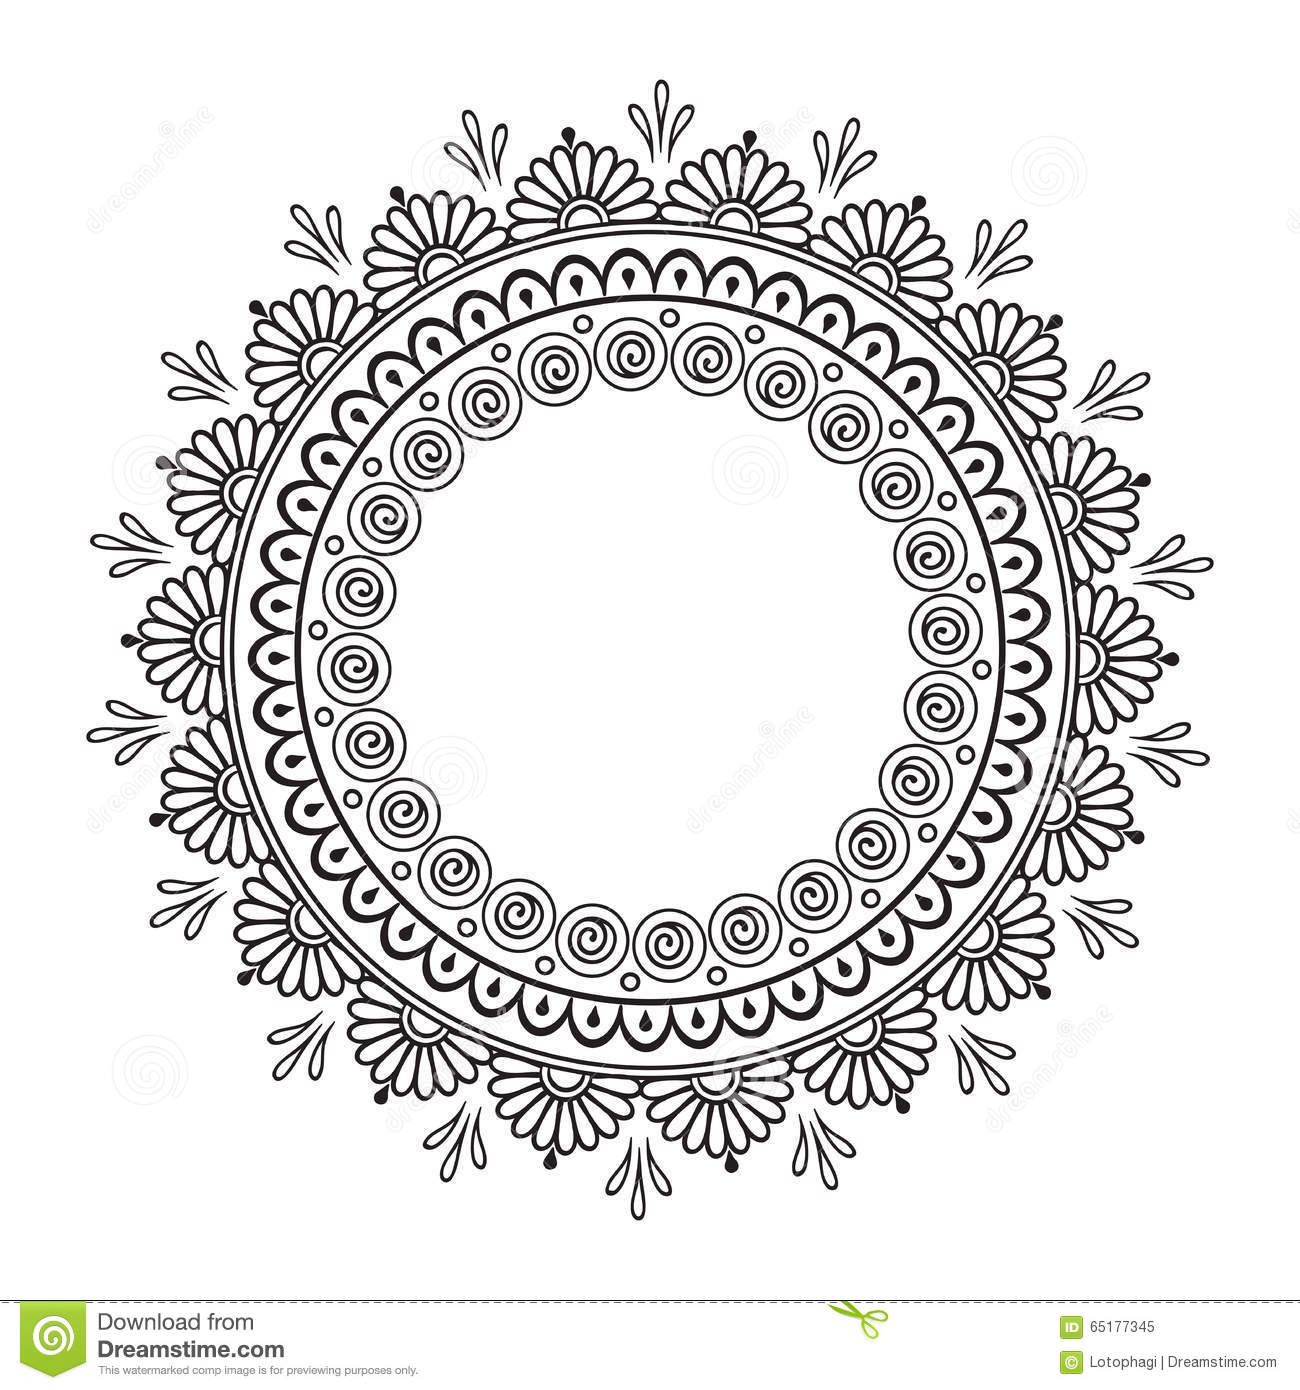 Coloring Book Pages Kids Adults Hand Drawn Abstract Design Decorative Indian Mandala Round Lace Ornate Frame Plate How To Draw Hands Mandala Design Art Mandala